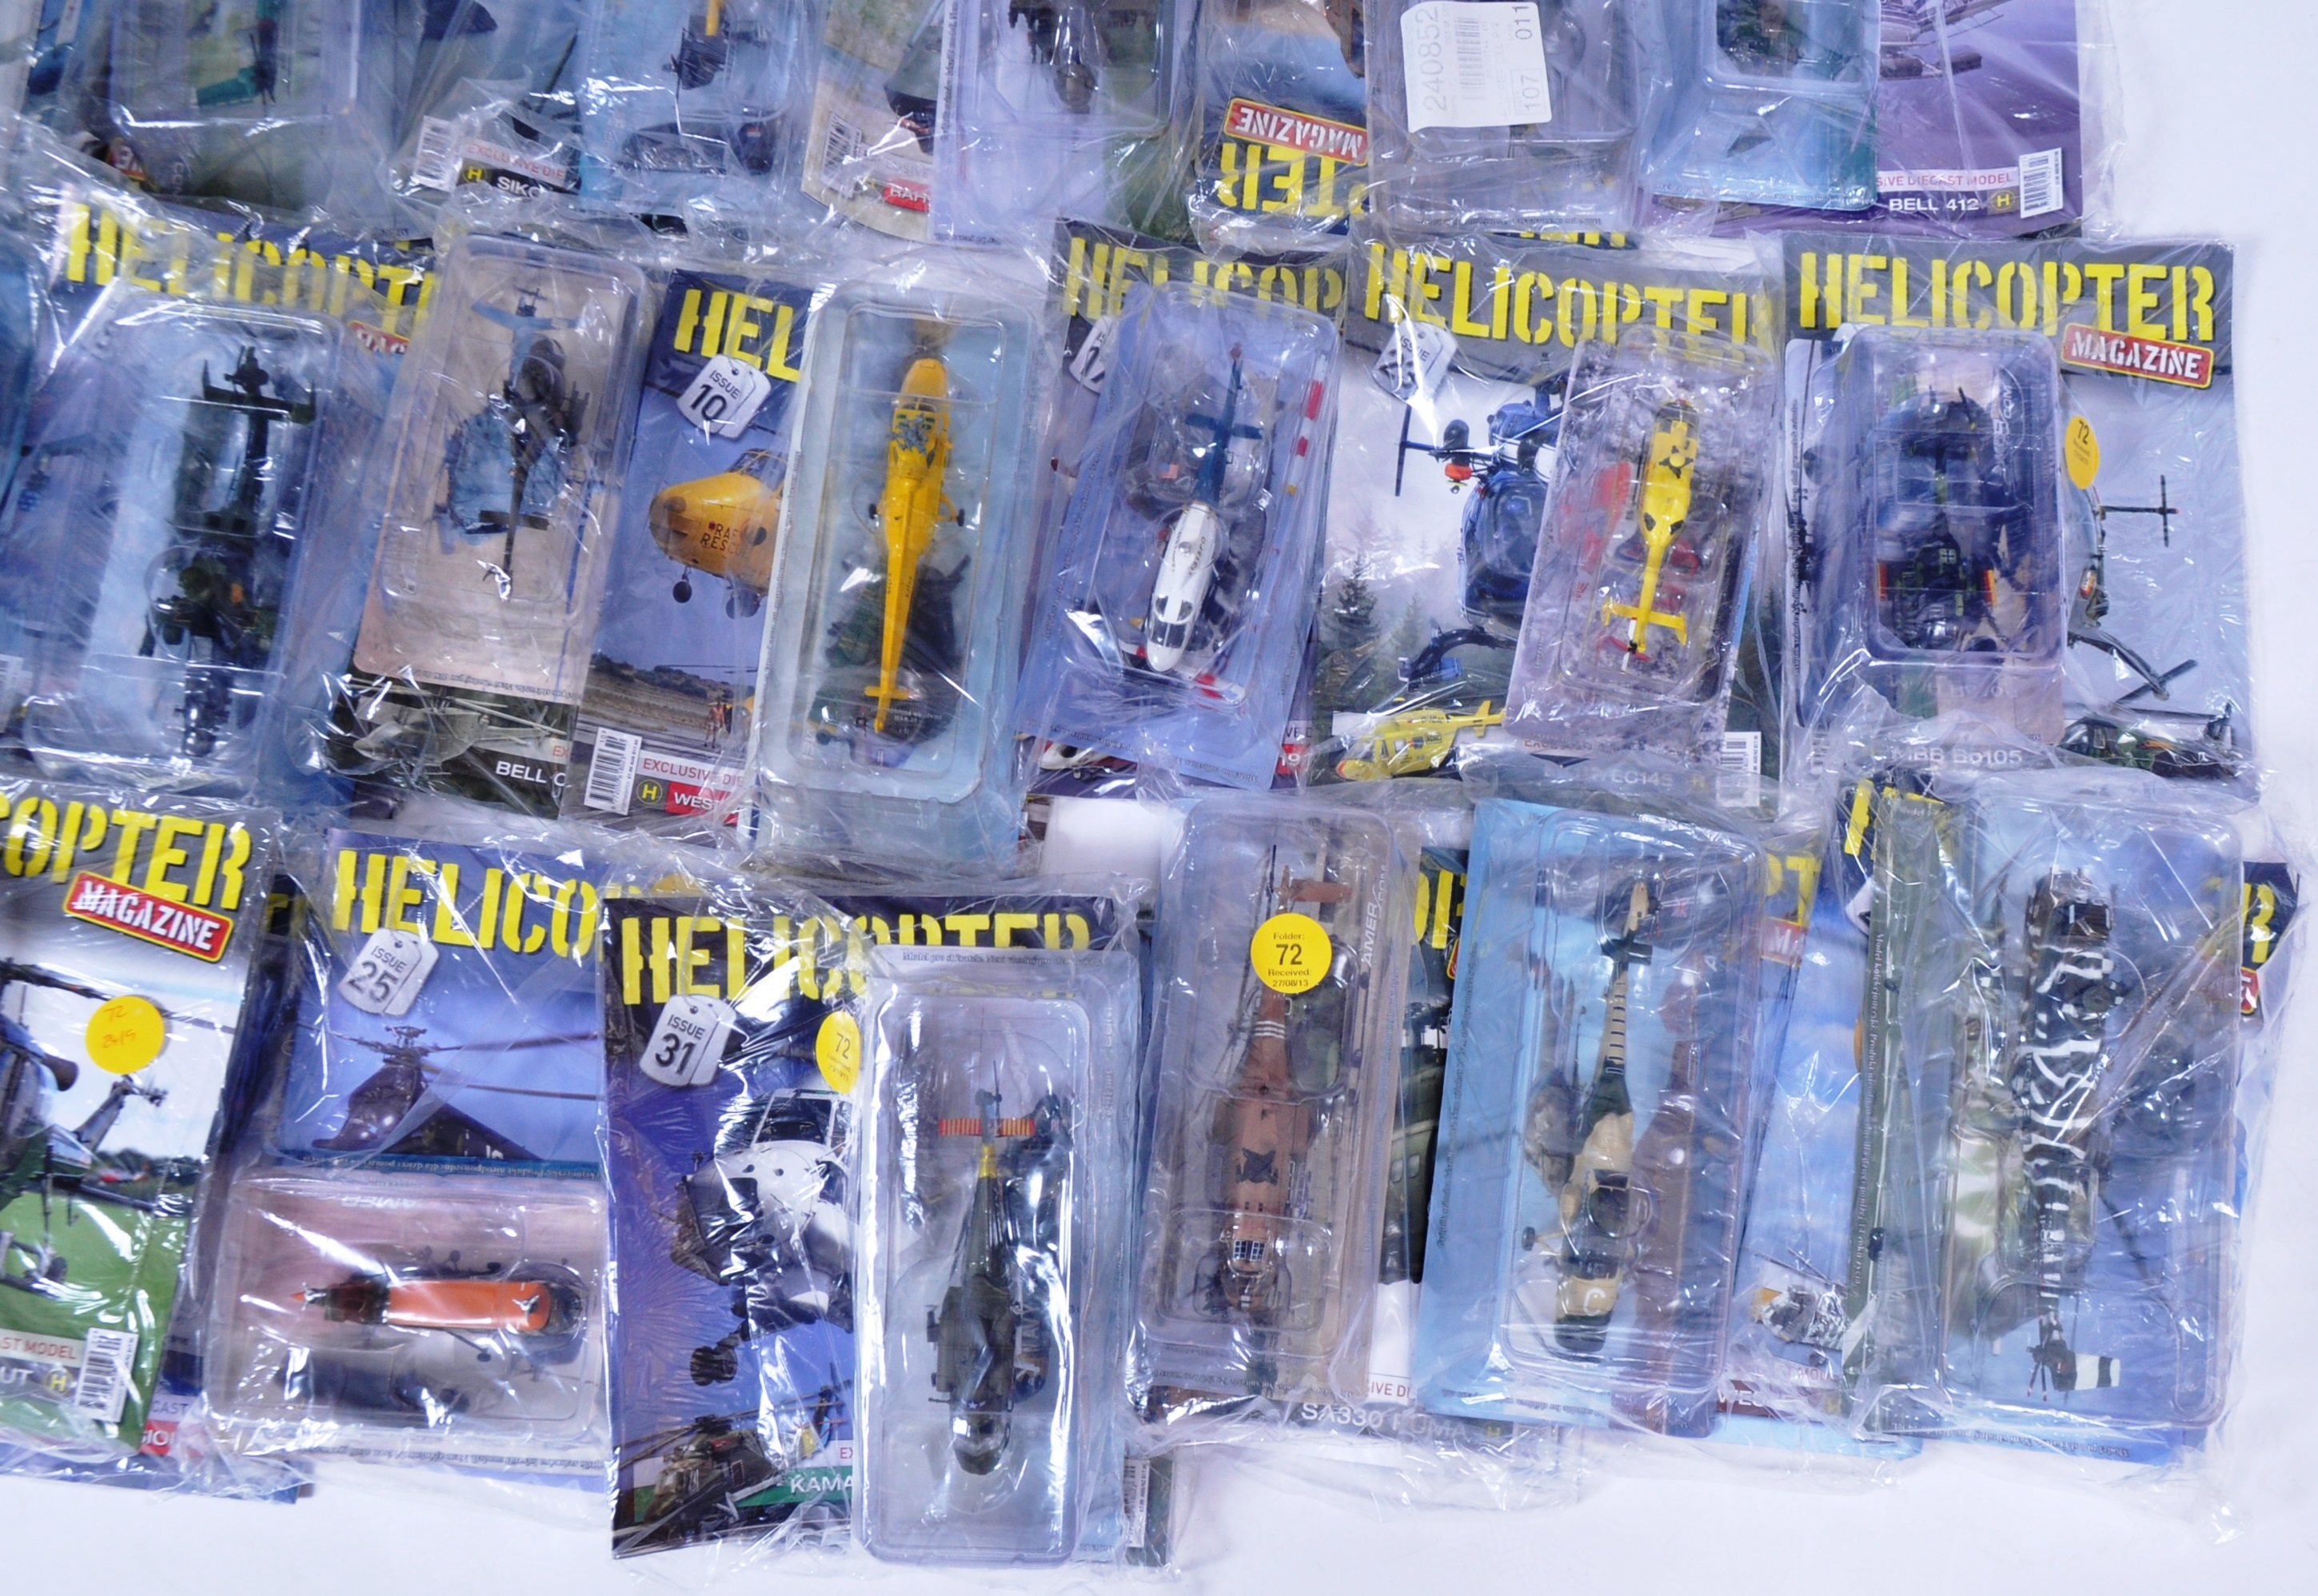 COLLECTION OF ASSORTED HELICOPTER DIECAST AND MAGAZINES - Image 4 of 8